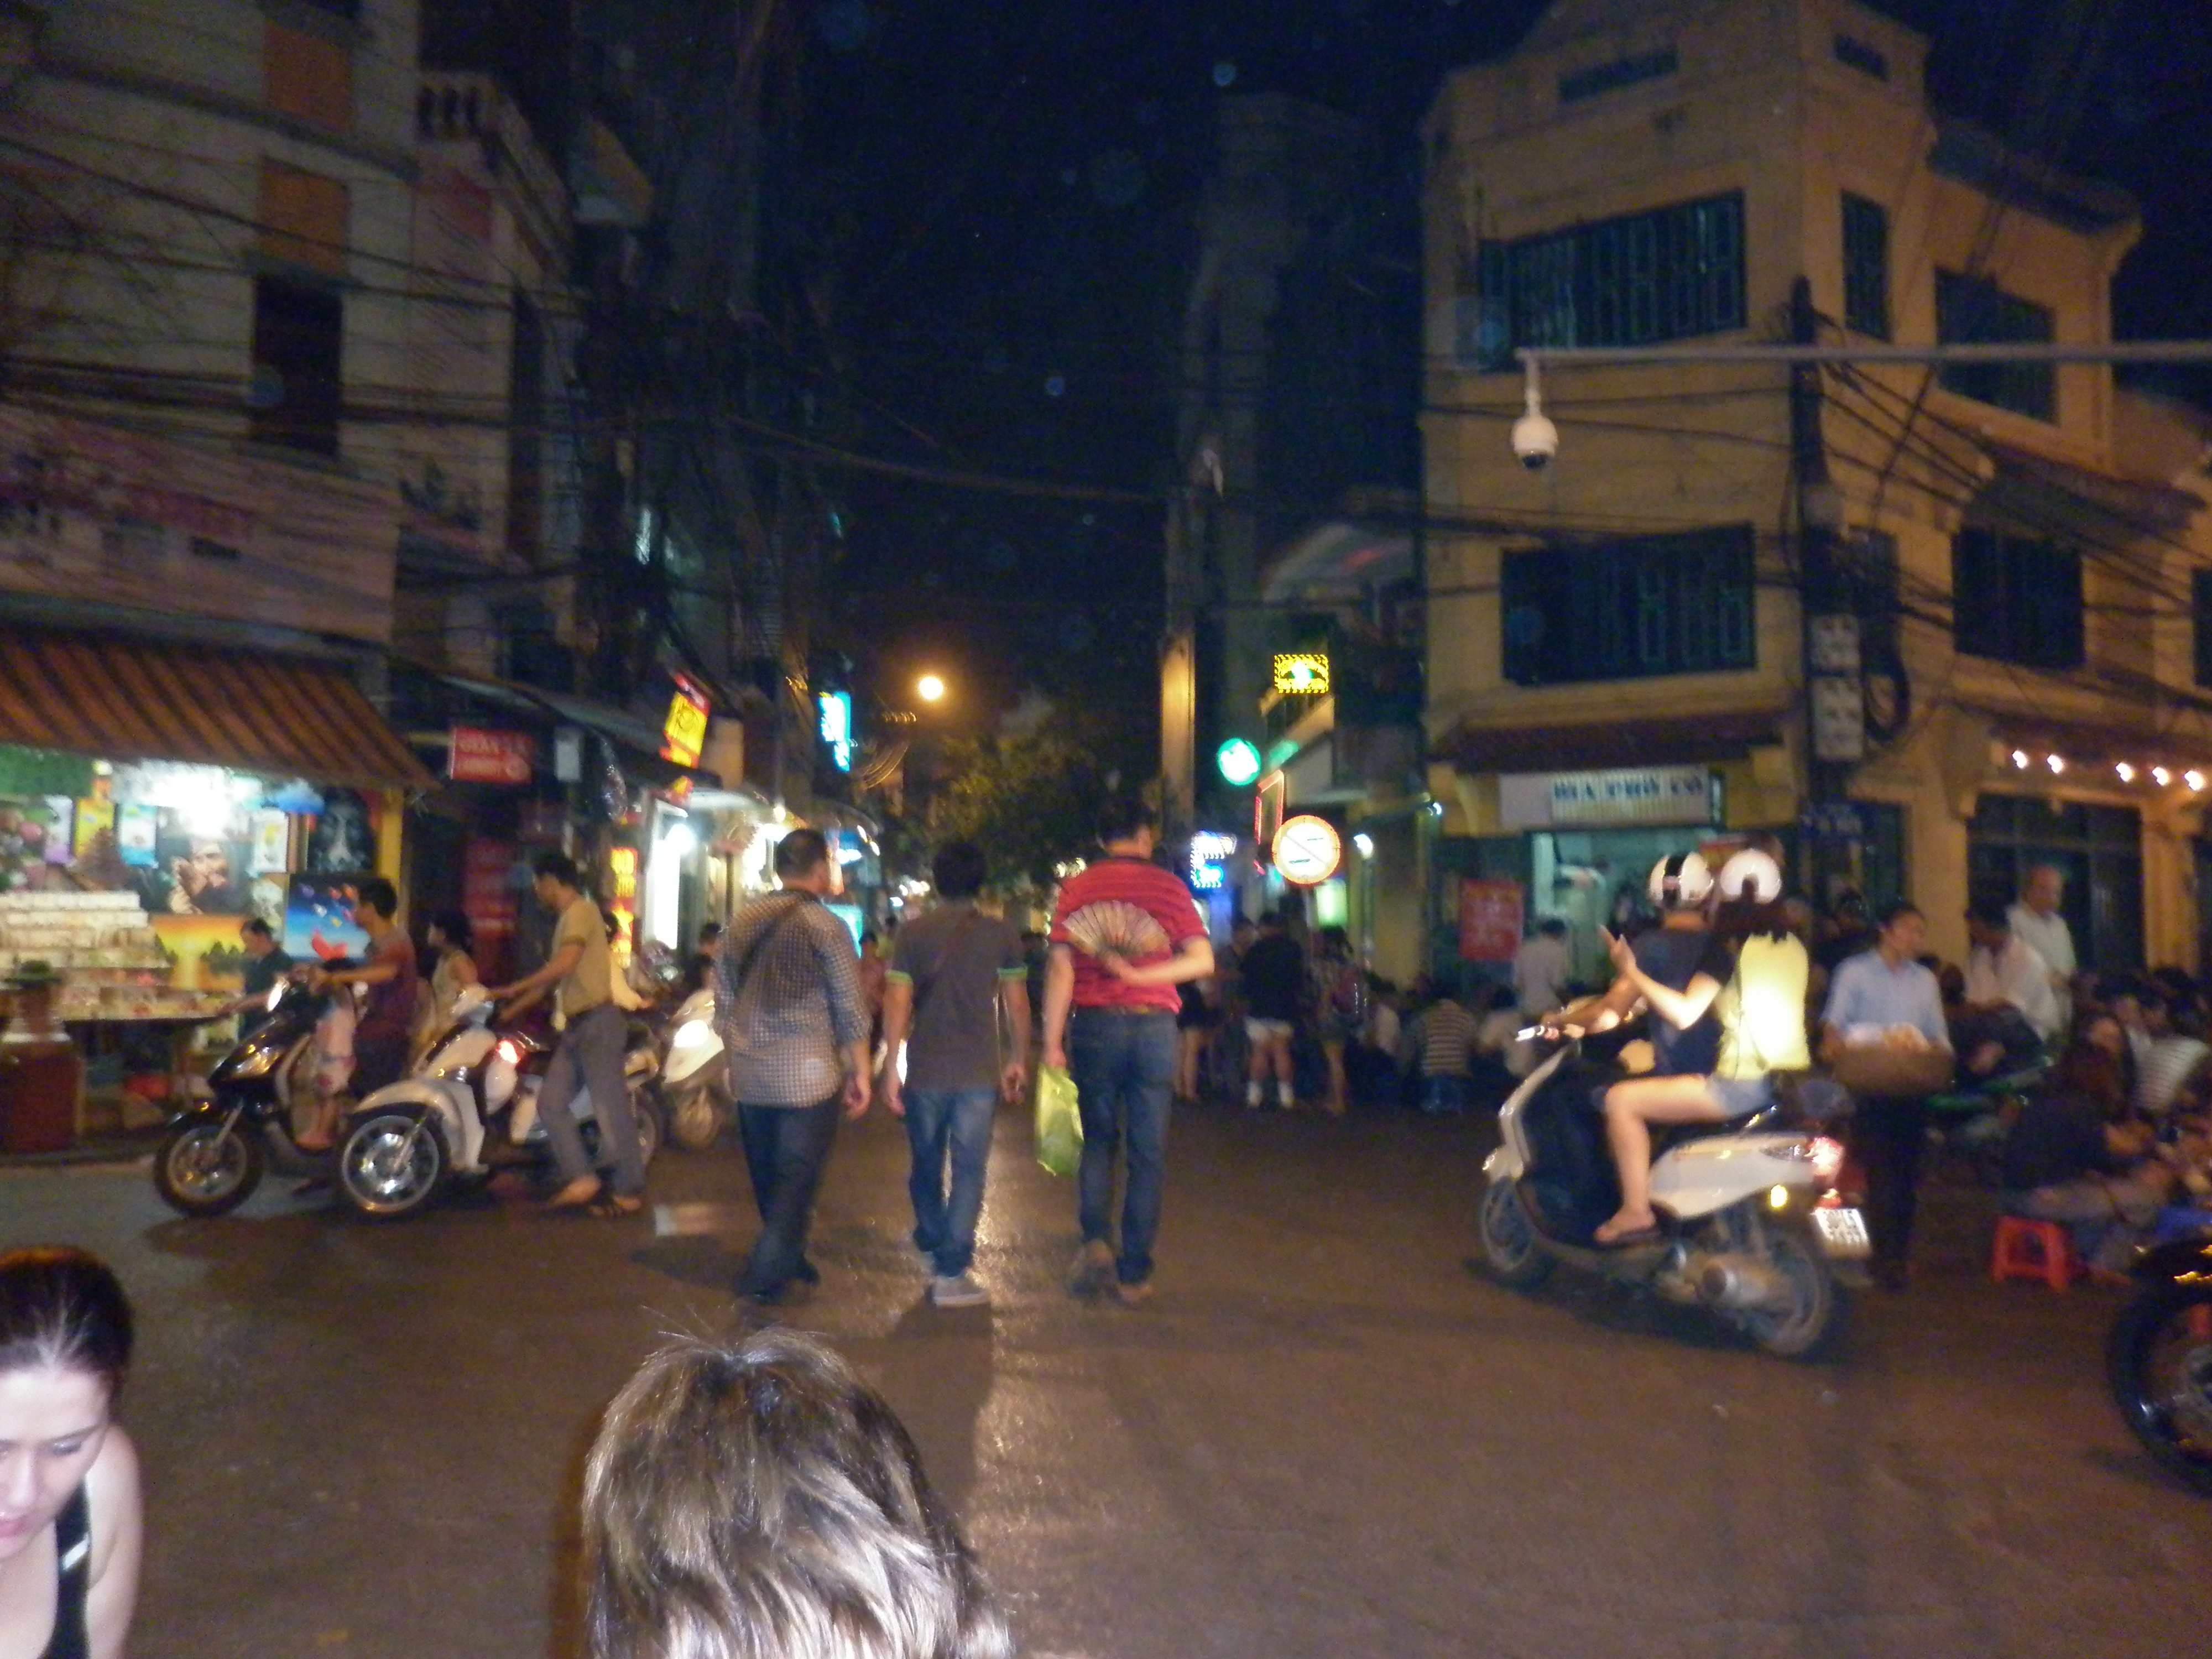 Busy crossroads of the old quarter of Hanoi